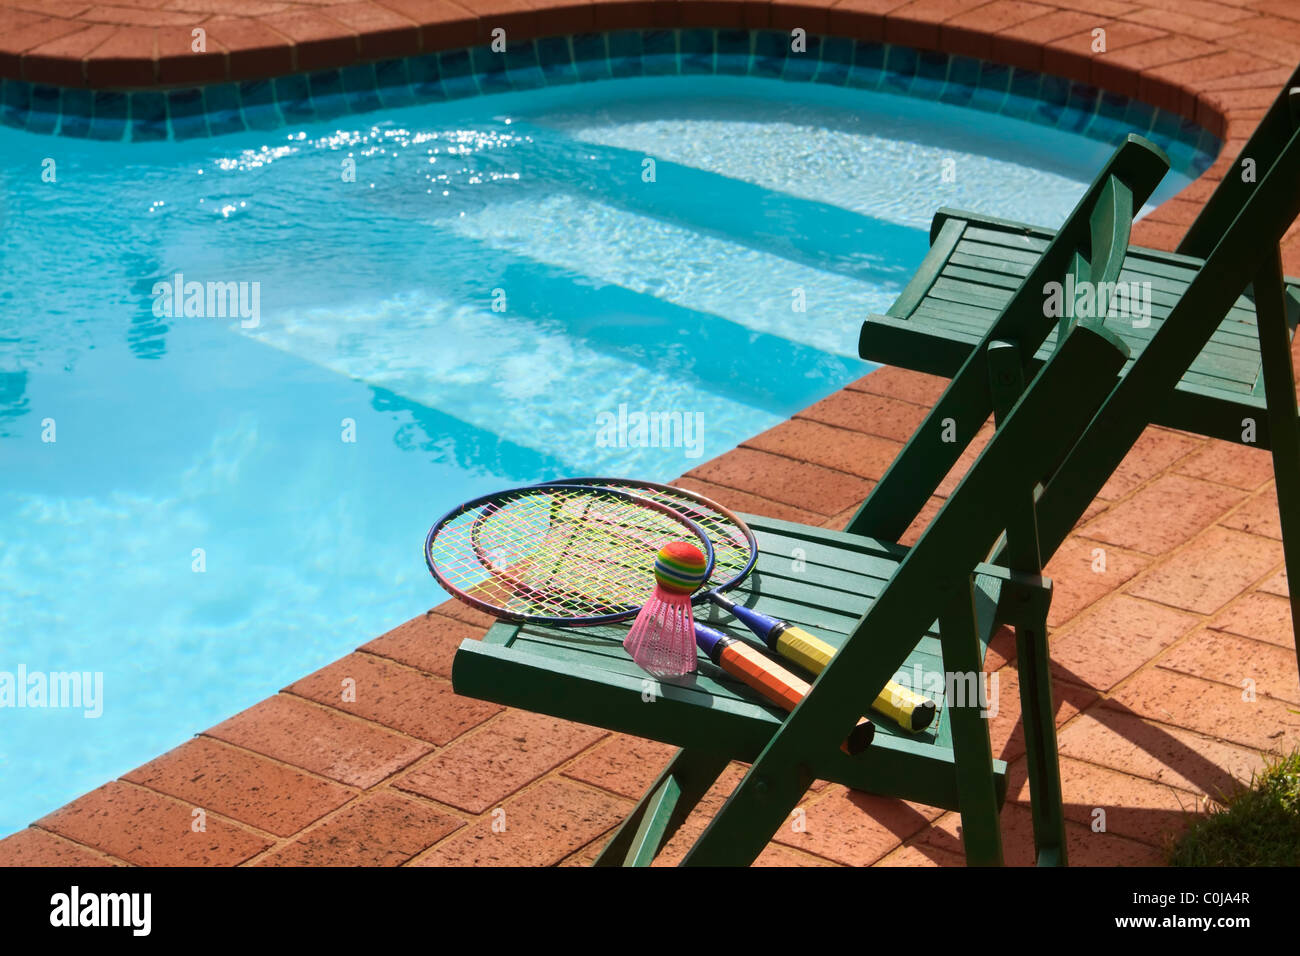 Two Deck Chairs And Garden Badminton Set Next To Swimming Pool.